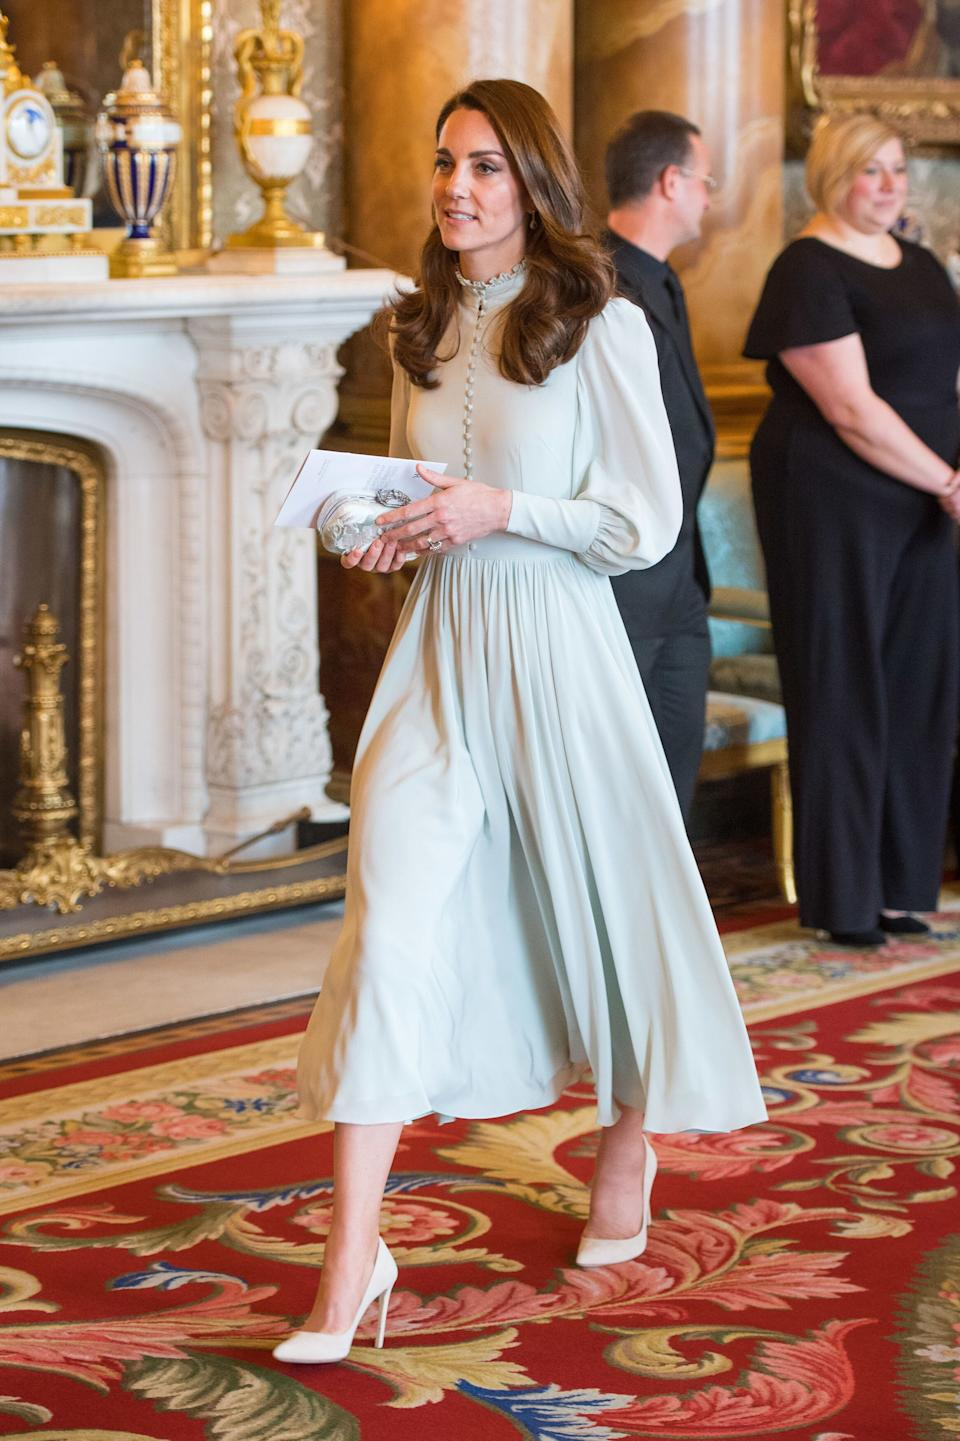 Kate attends a reception to mark the fiftieth anniversary of the investiture of her father-in-law, the Prince of Wales, at Buckingham Palace on March 5.